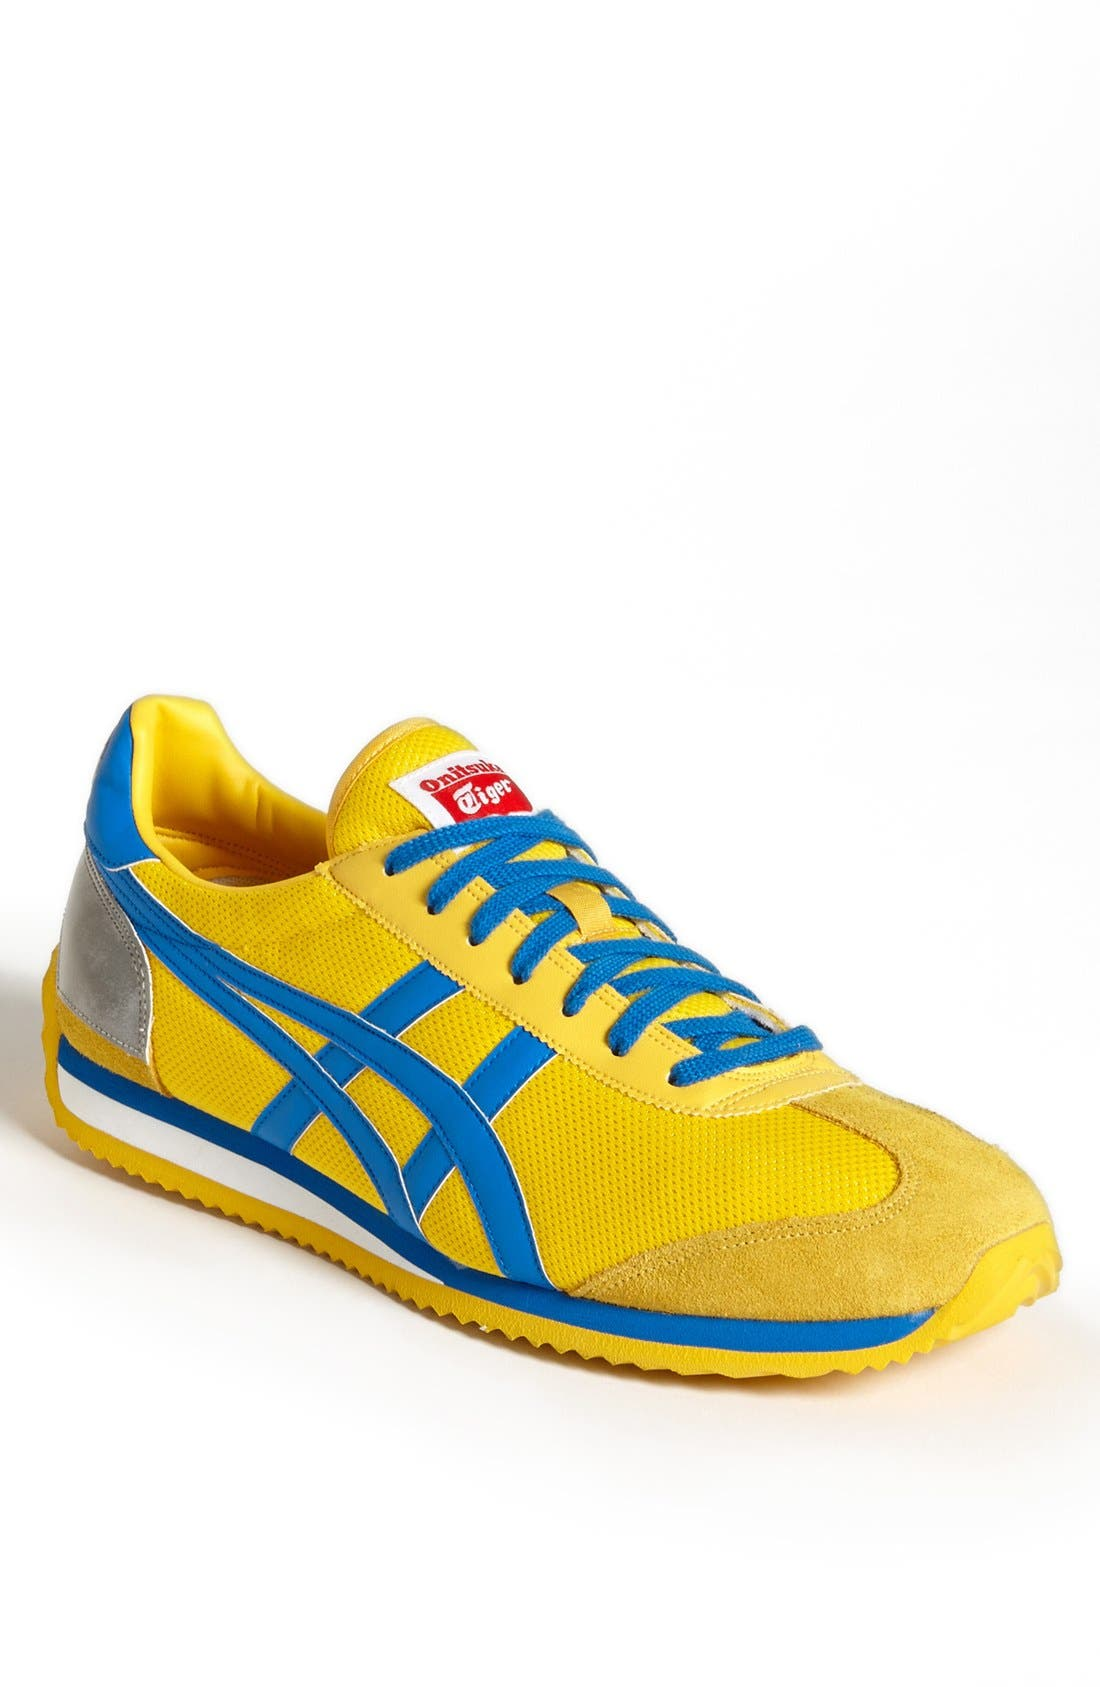 Main Image - Onitsuka Tiger™ 'California 78' Sneaker (Men)